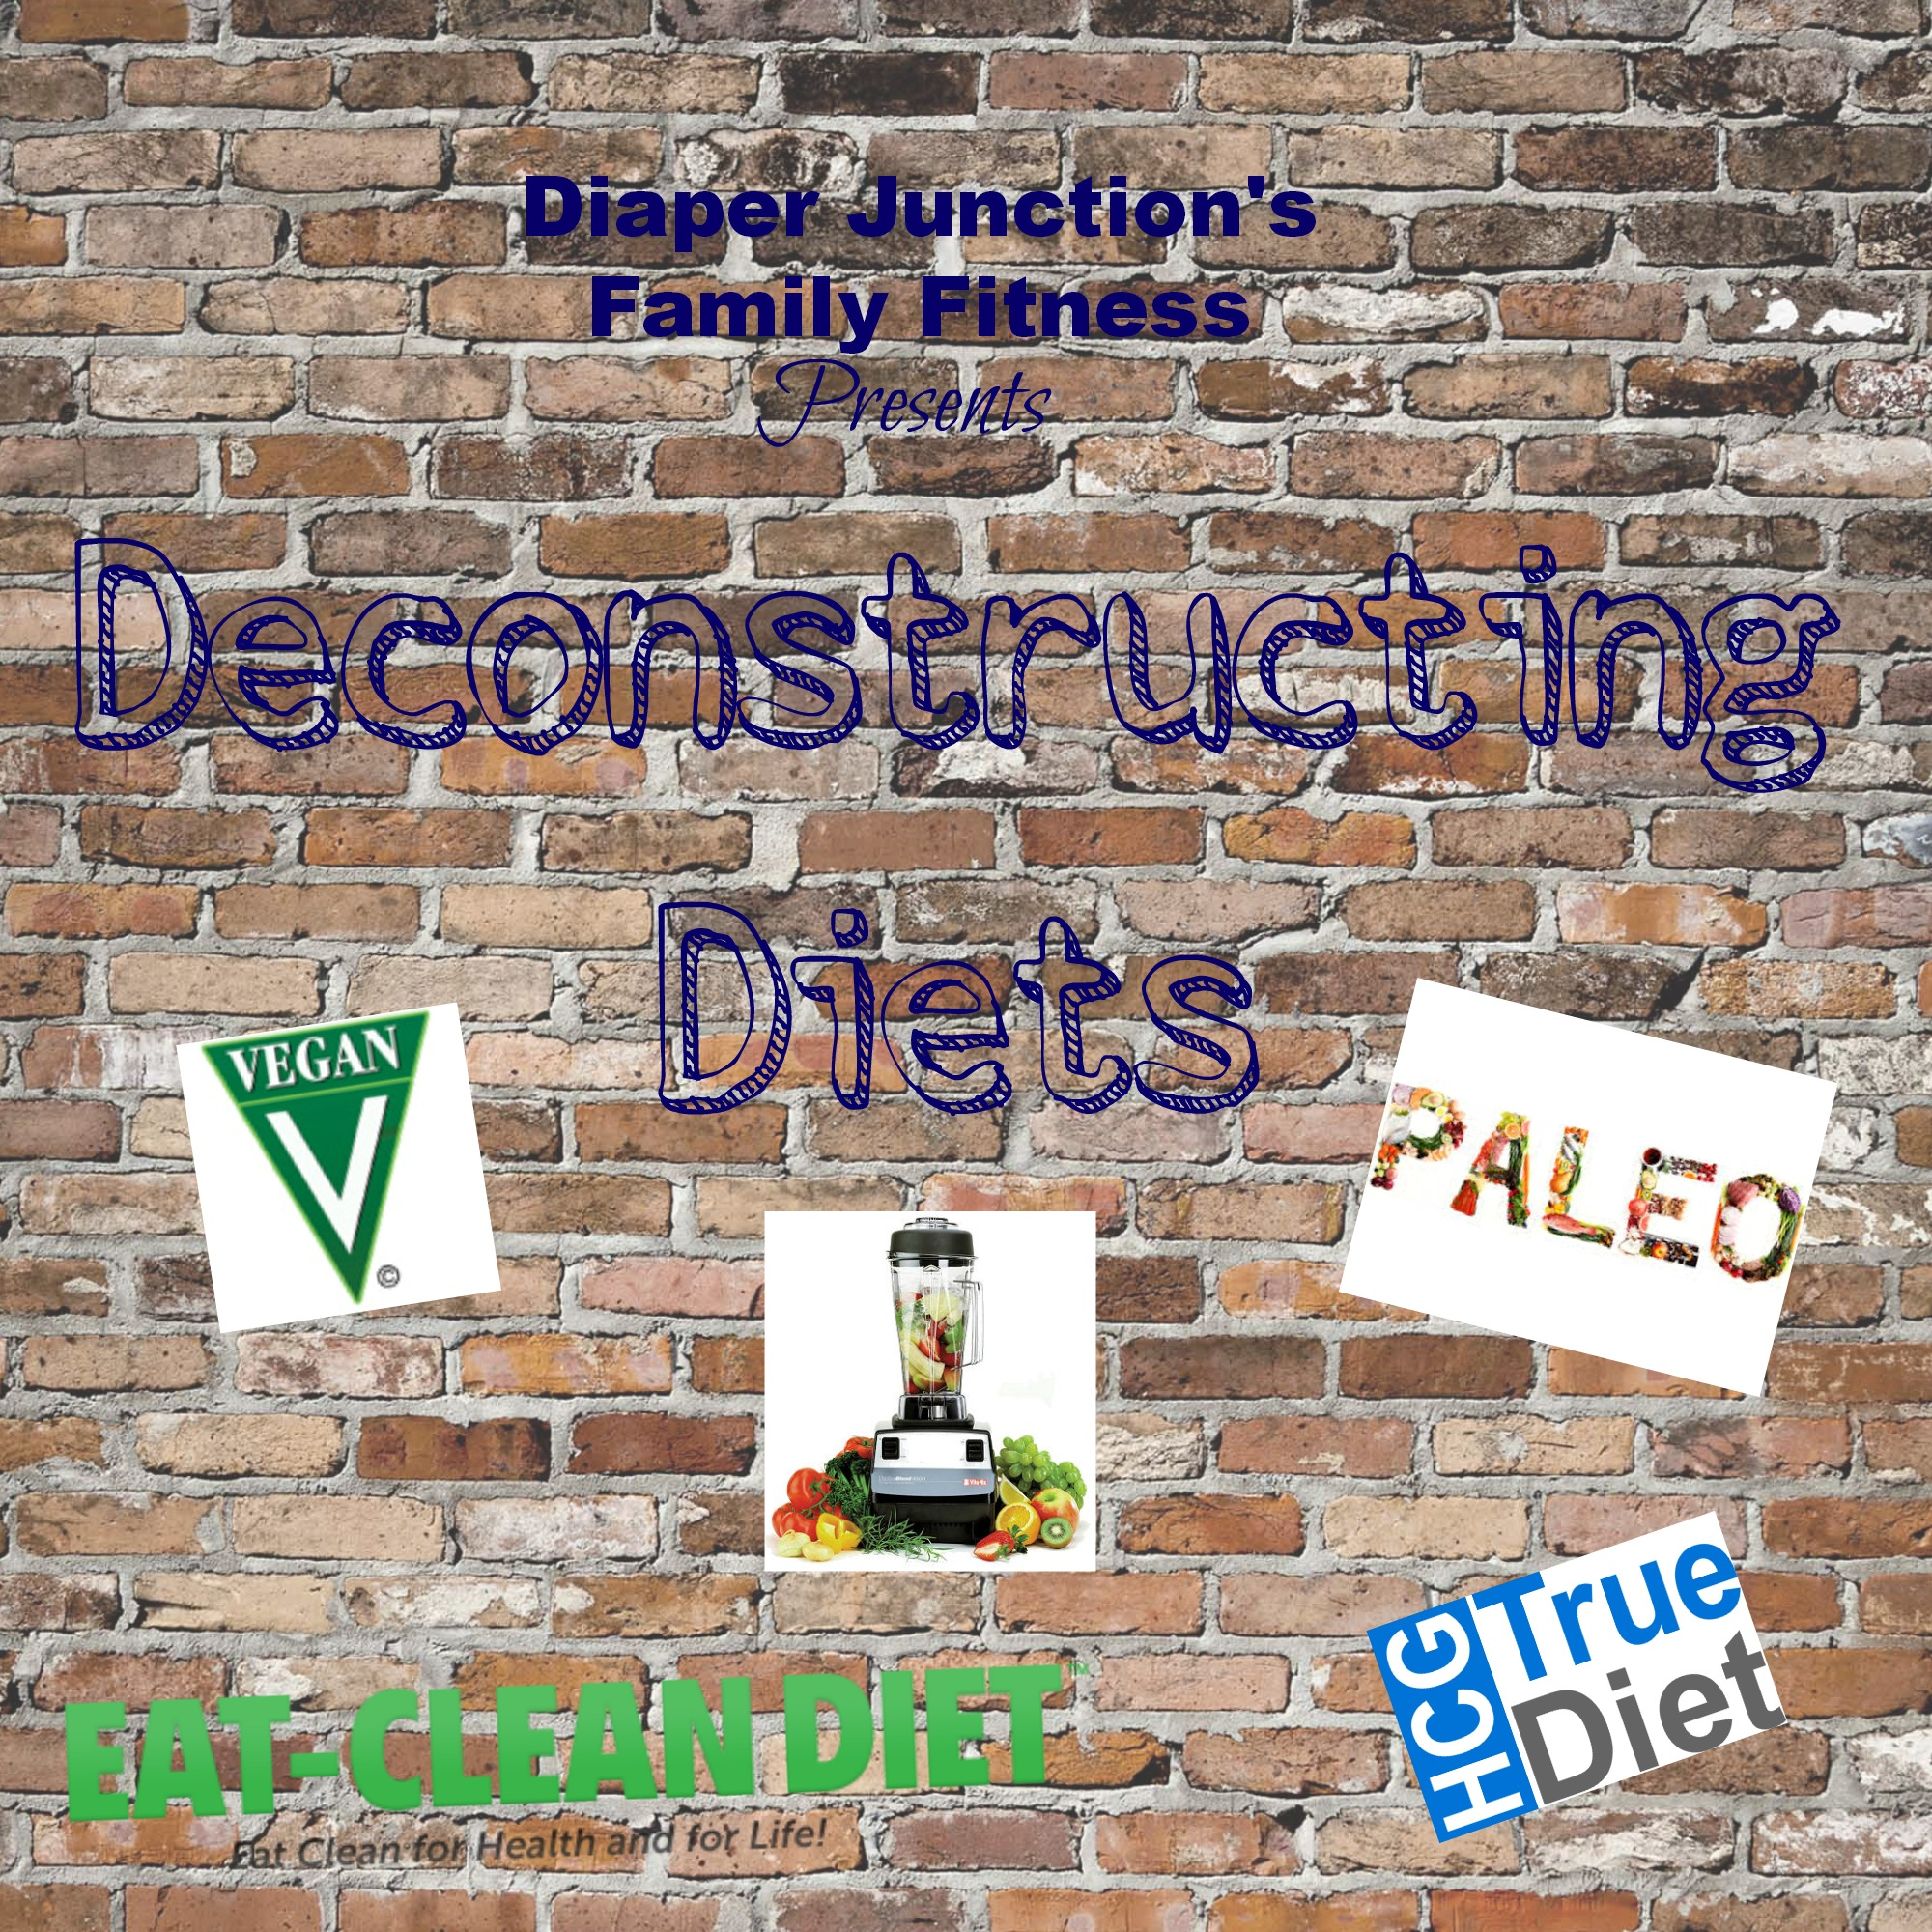 juicing,diets,fitness